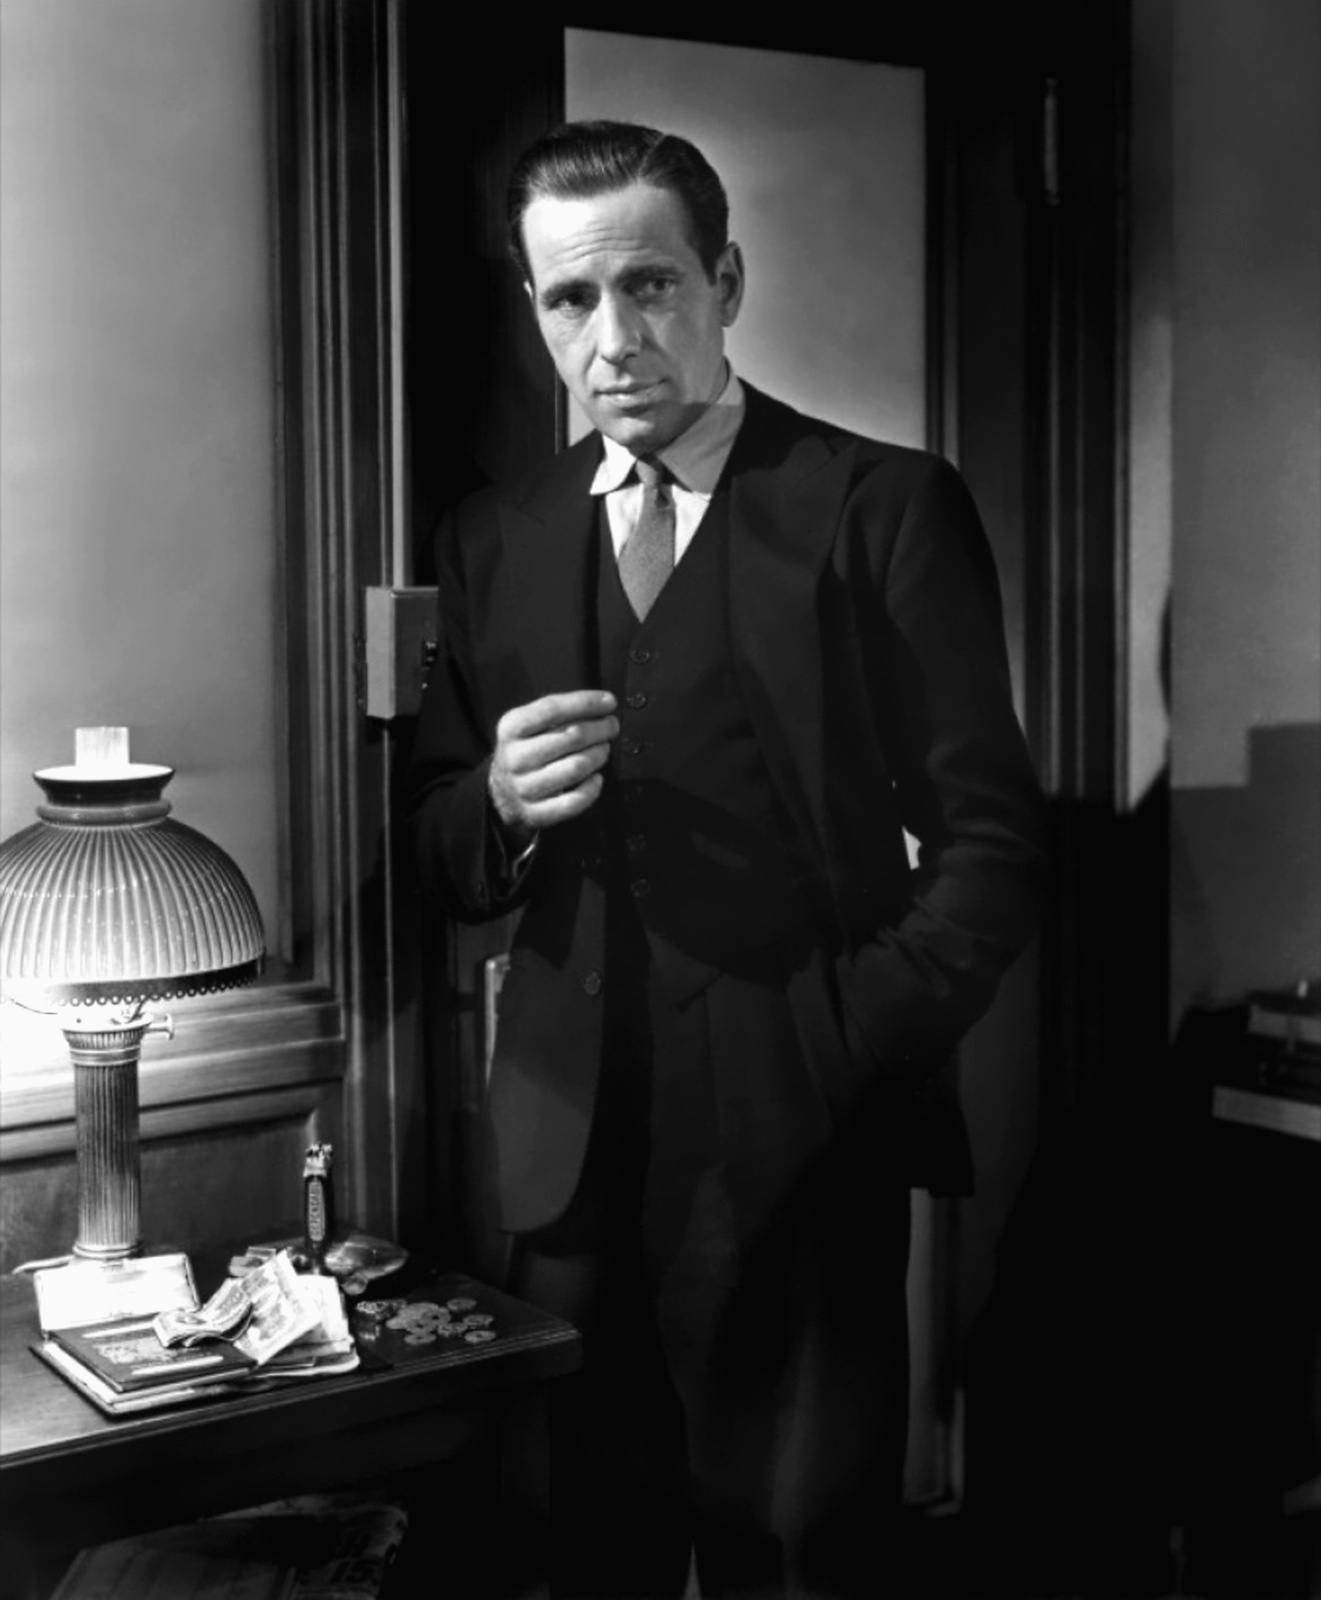 sam spade in the maltese falcon essay The maltese falcon:  character analysis character analysis sam spade the protagonist of this story, sam spade is blond and well-built with hard, distinct facial.